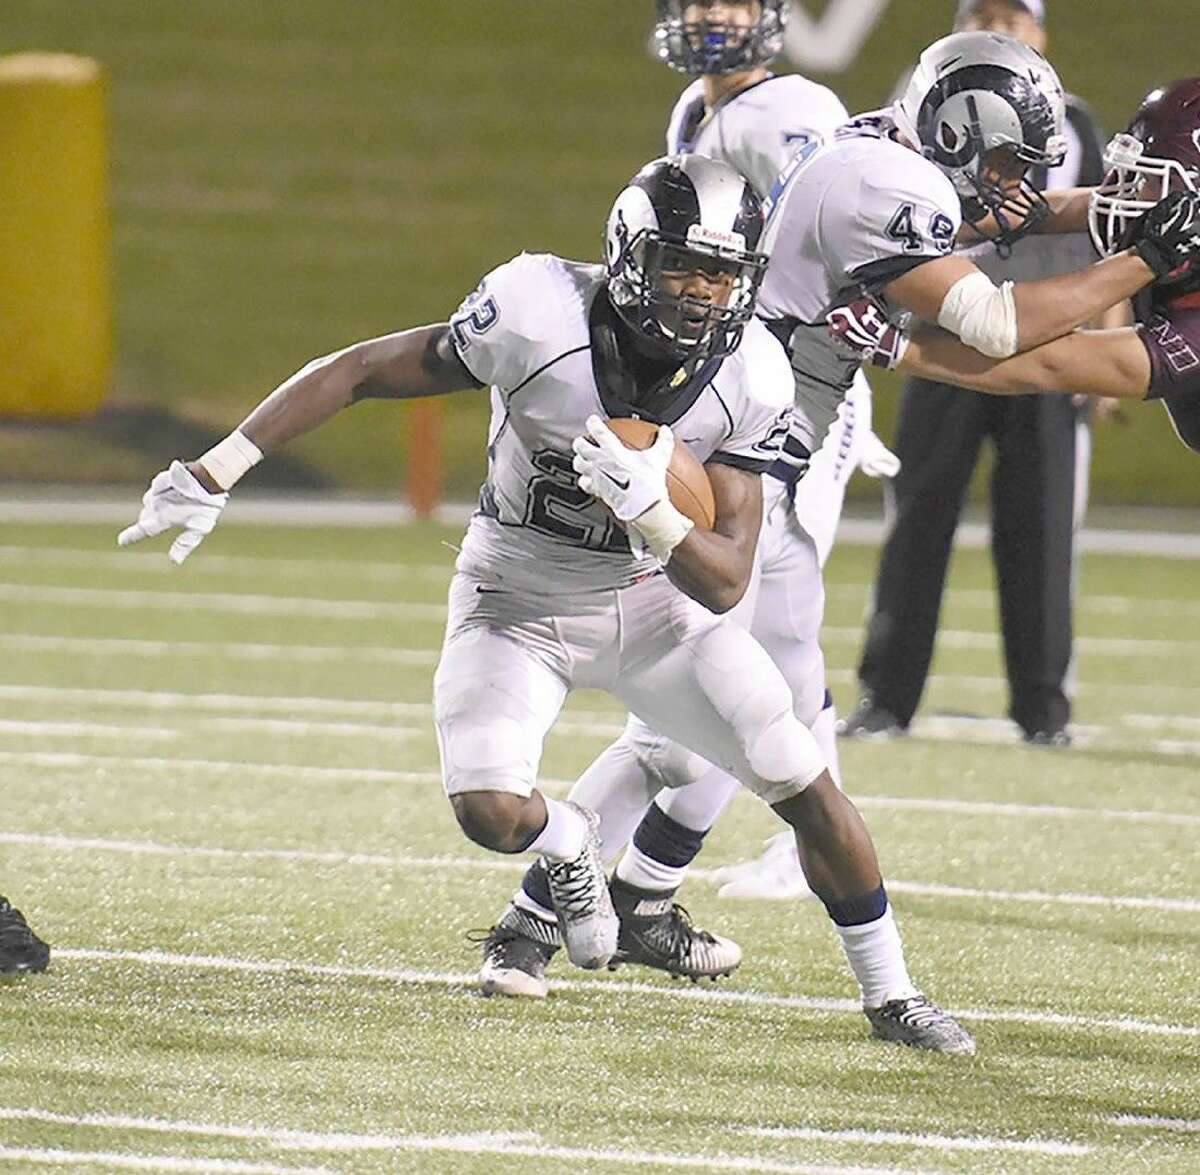 Cypress Ridge High School junior running back Trelon Smith was named the District 17-6A Offensive MVP in 2015, and he is without question one of the most potent weapons in the city, if not the state.